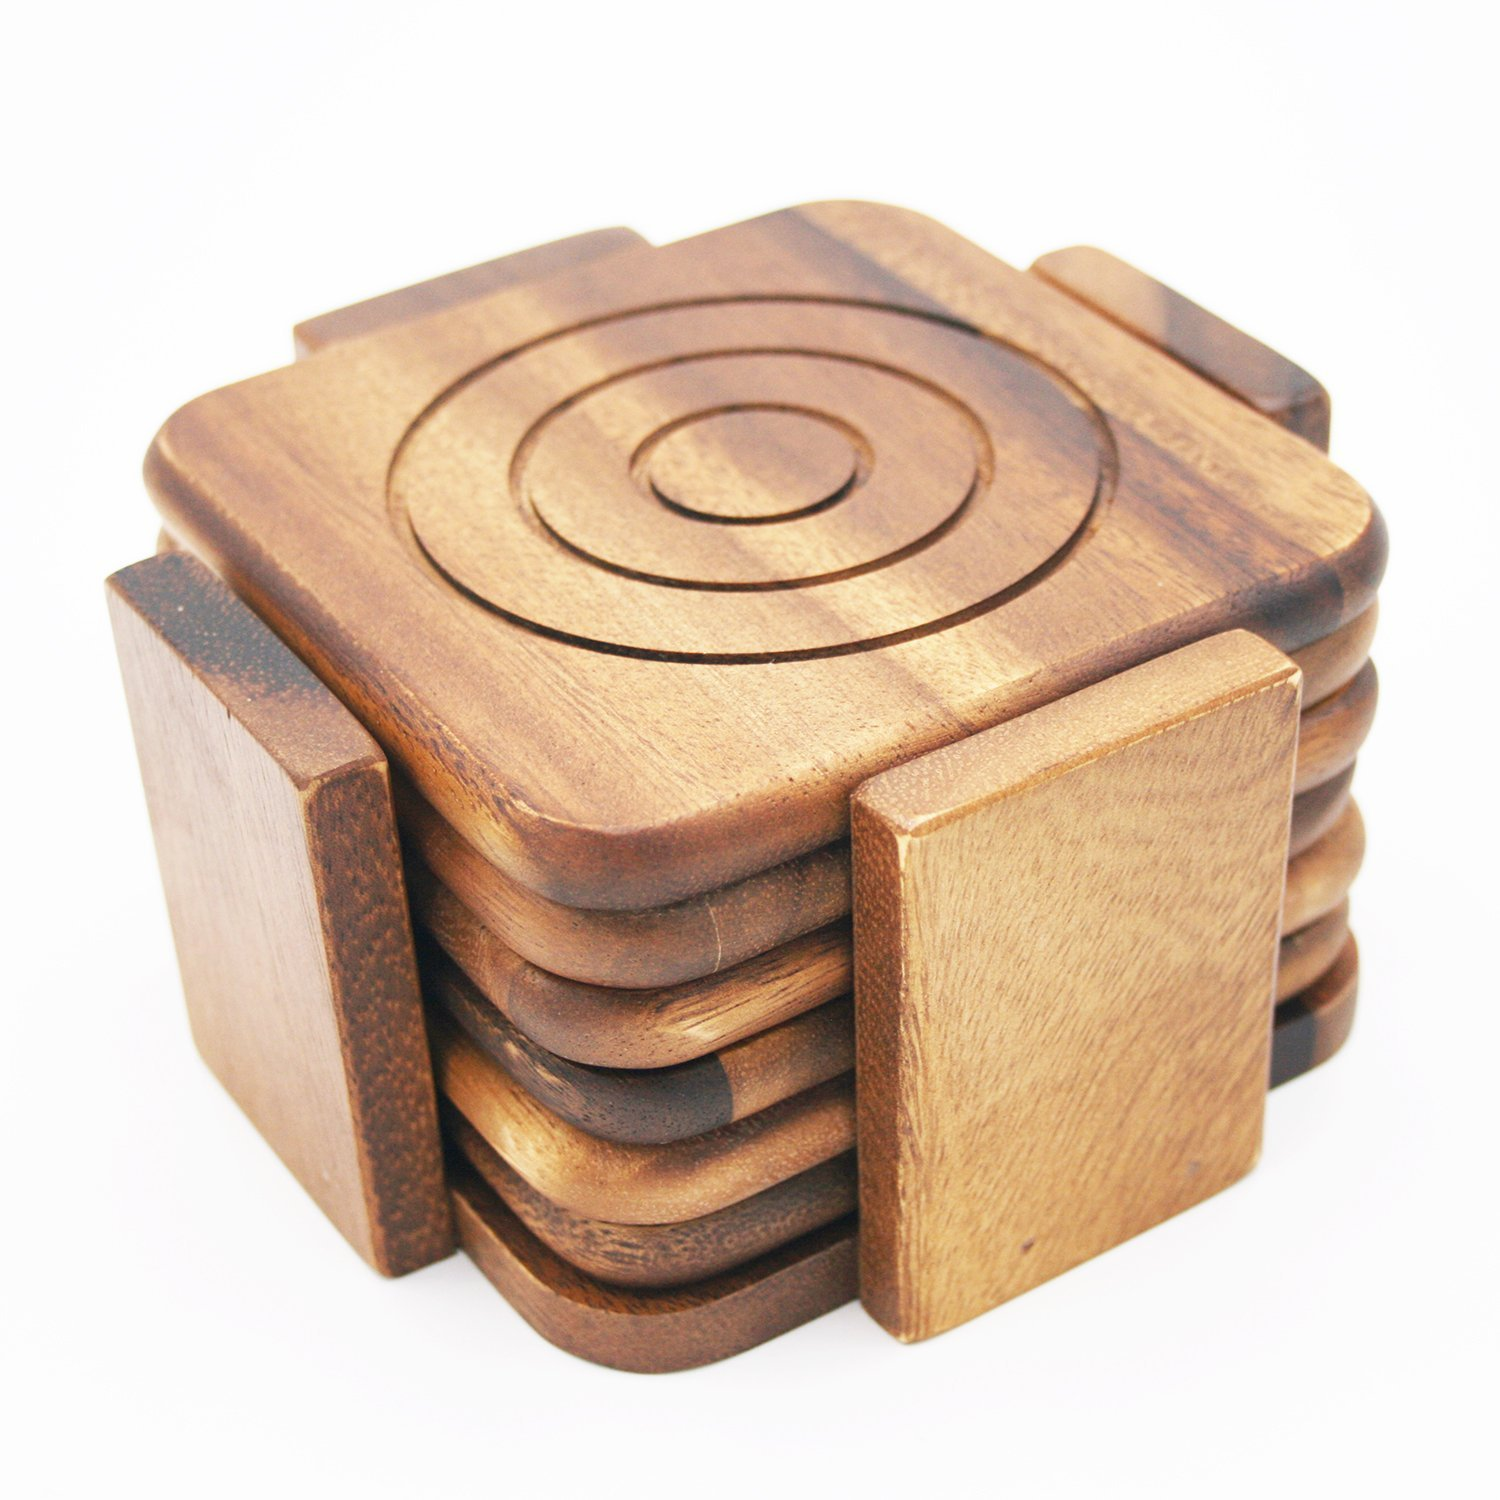 Wooden Coaster Holder Premium Set Of 6 Wood Drink Coasters Acacia Wooden Coasters With